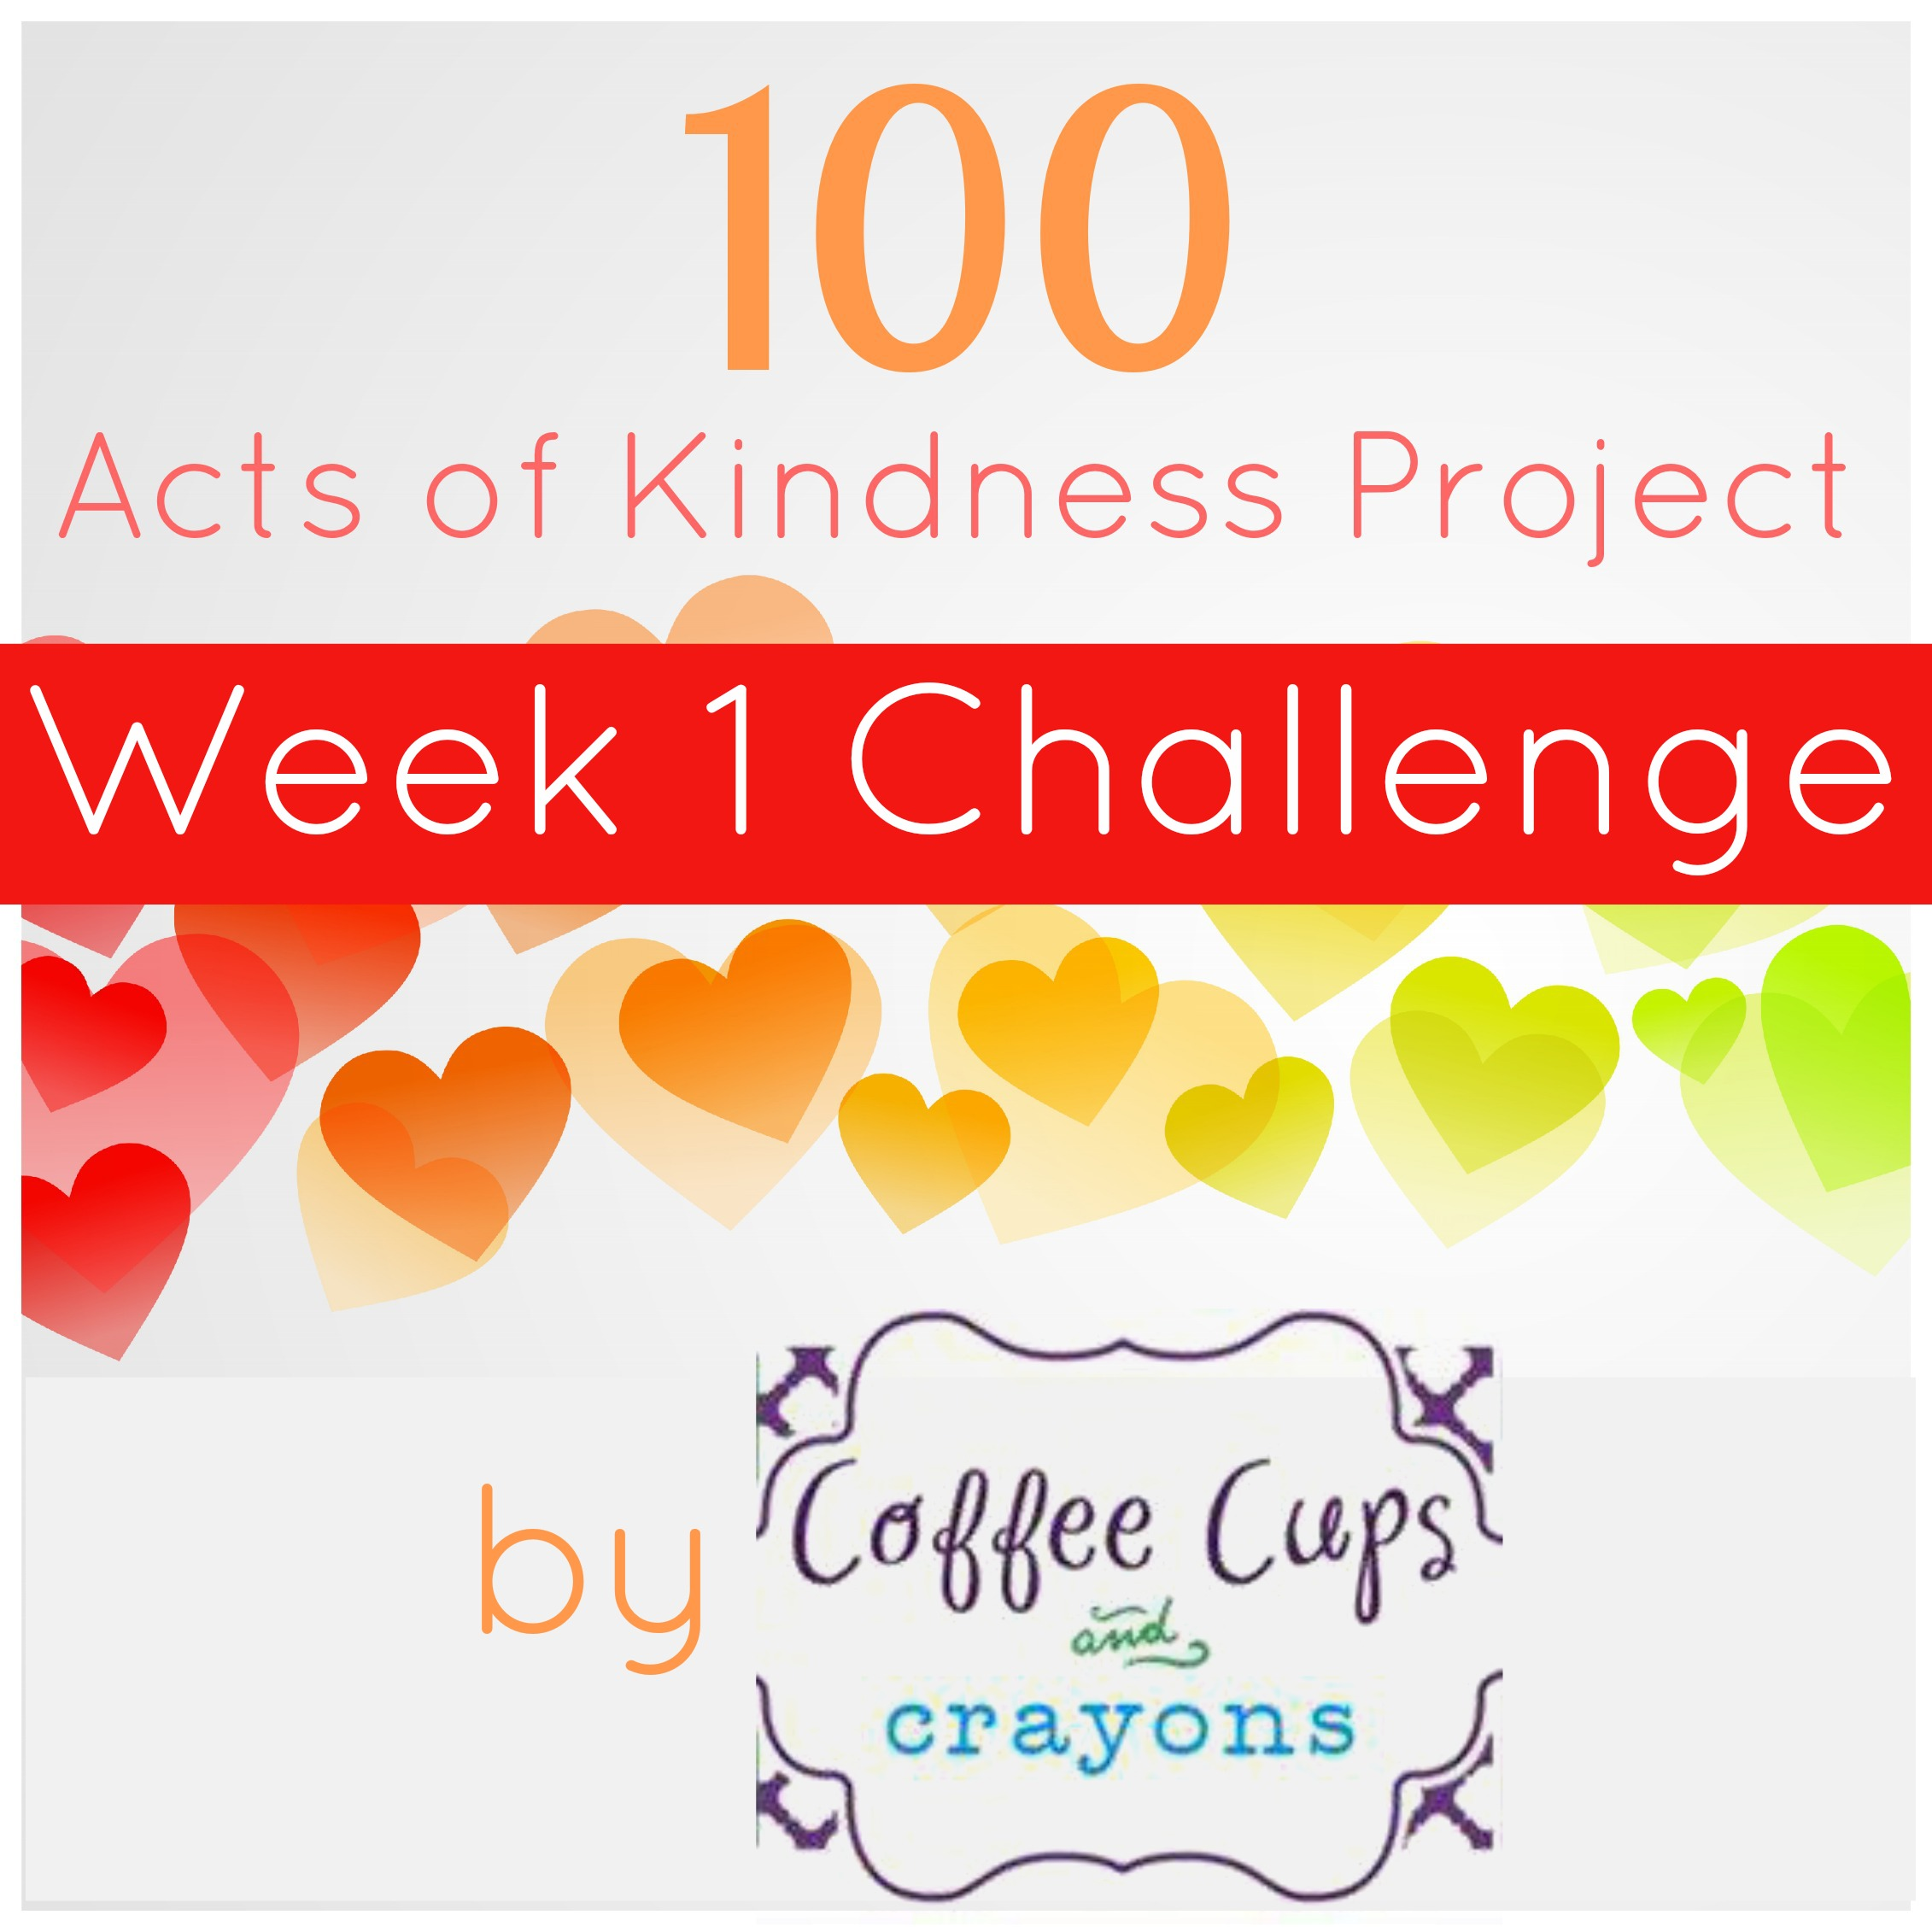 100 Acts of Kindness Week 1 Challenge from Coffee Cups and Crayons